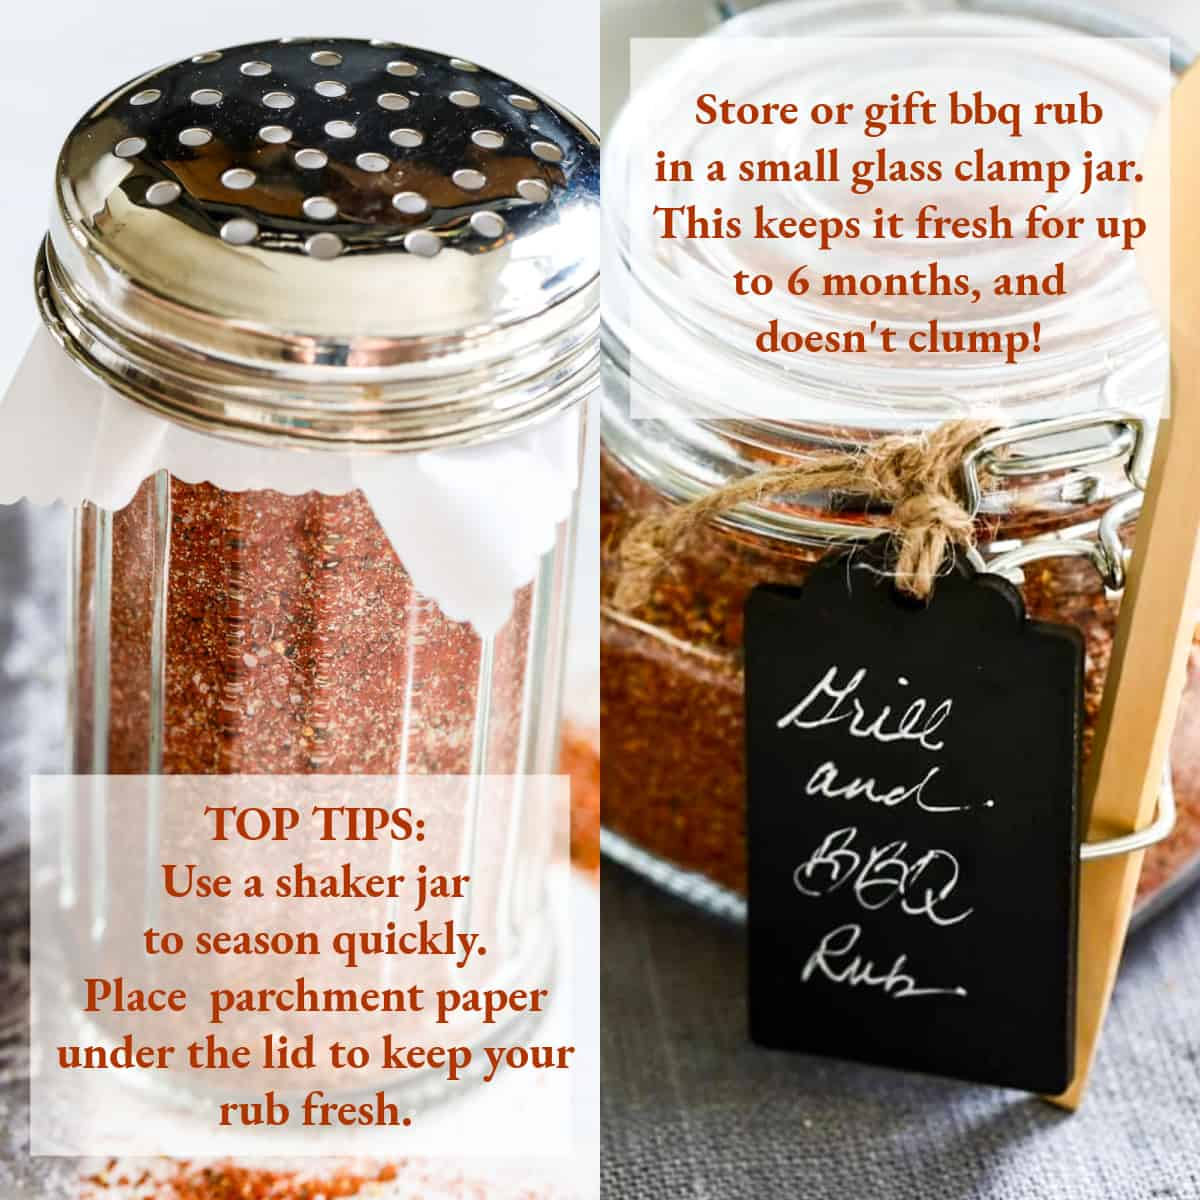 A graphic showing how to put dry rub in a shaker jar or clamp jar to use in cooking.